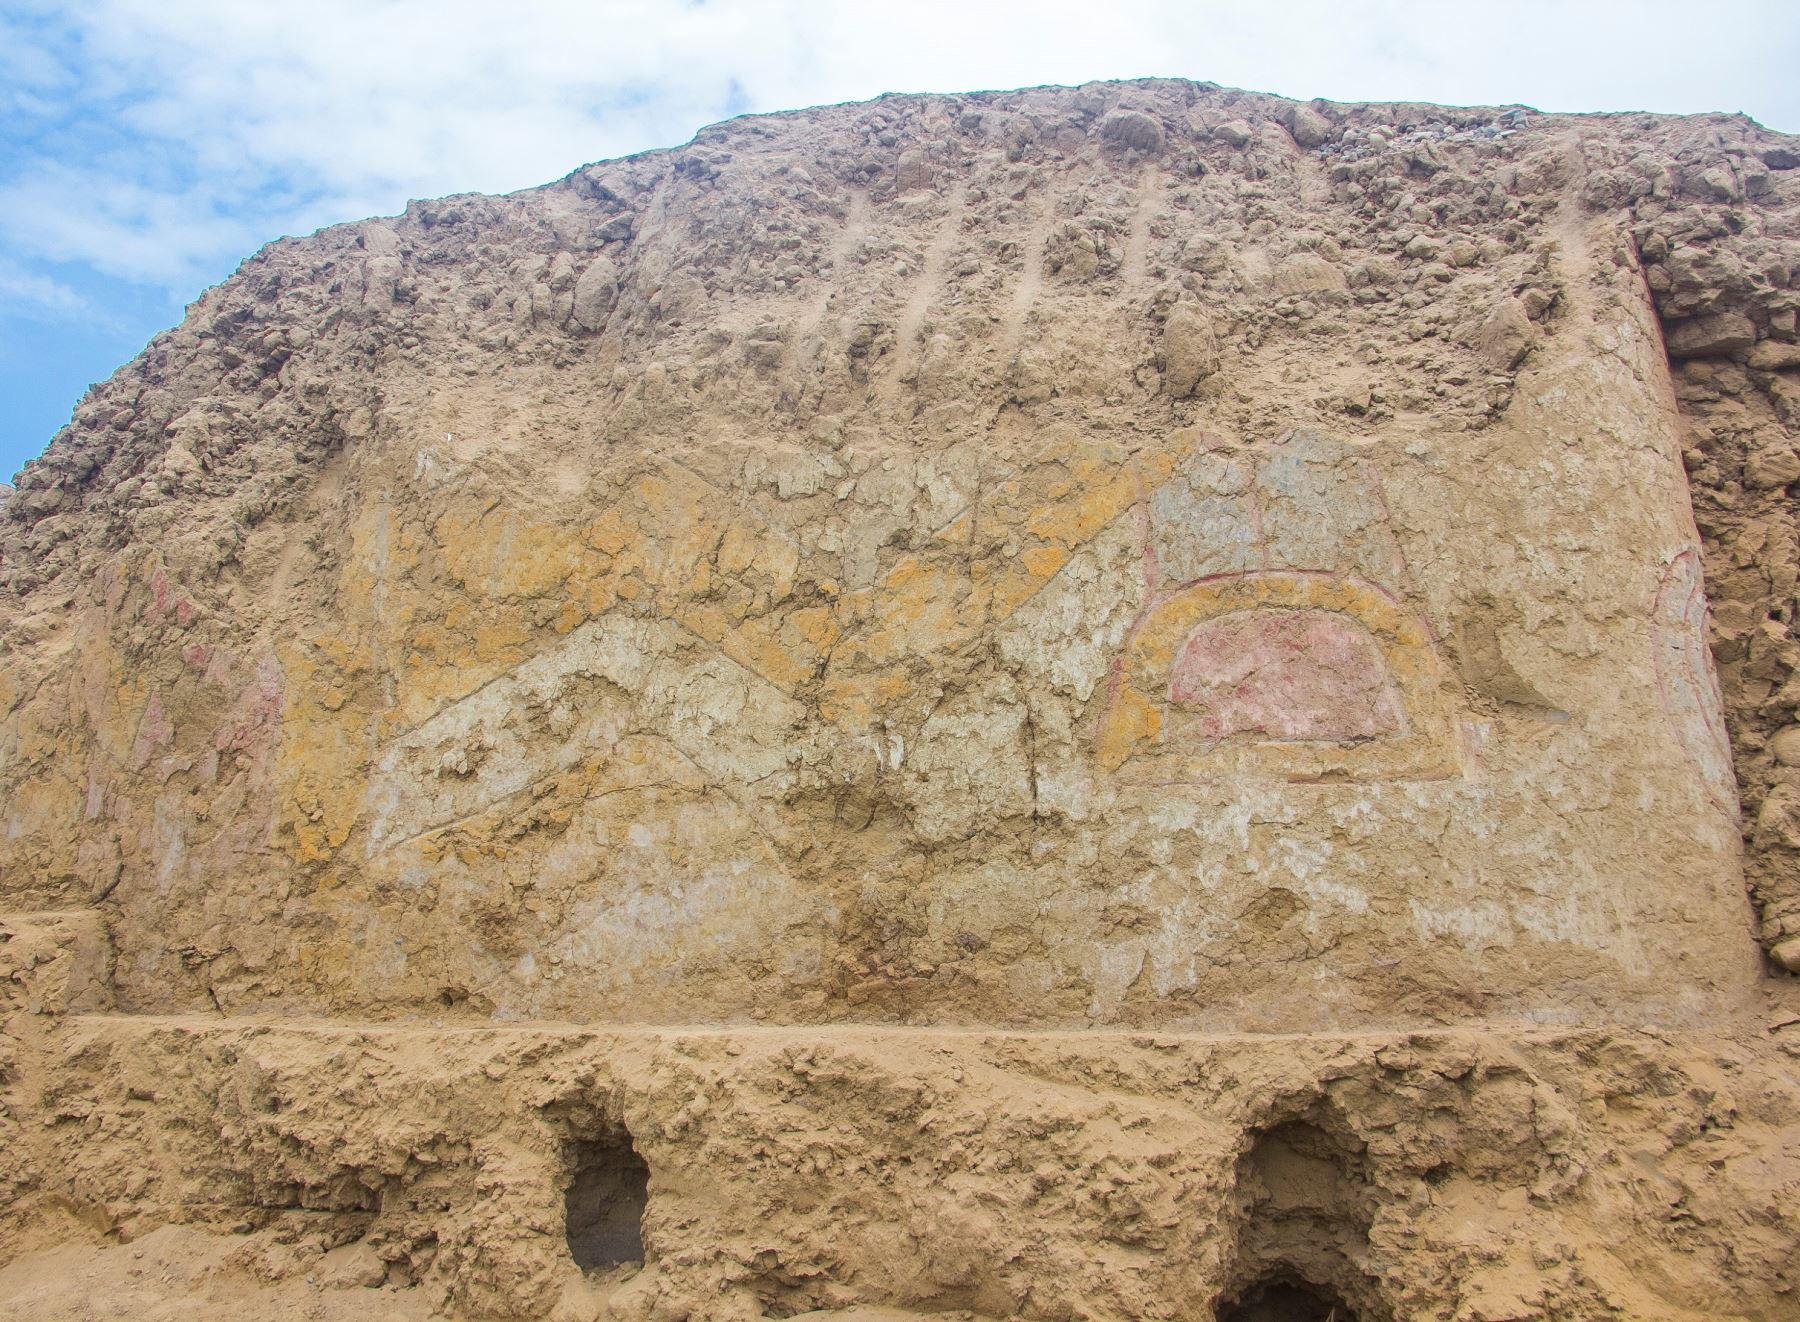 Archaeologists Have Discovered a 3,200-Year-Old Mural of a Knife-Wielding Spider God in Peru